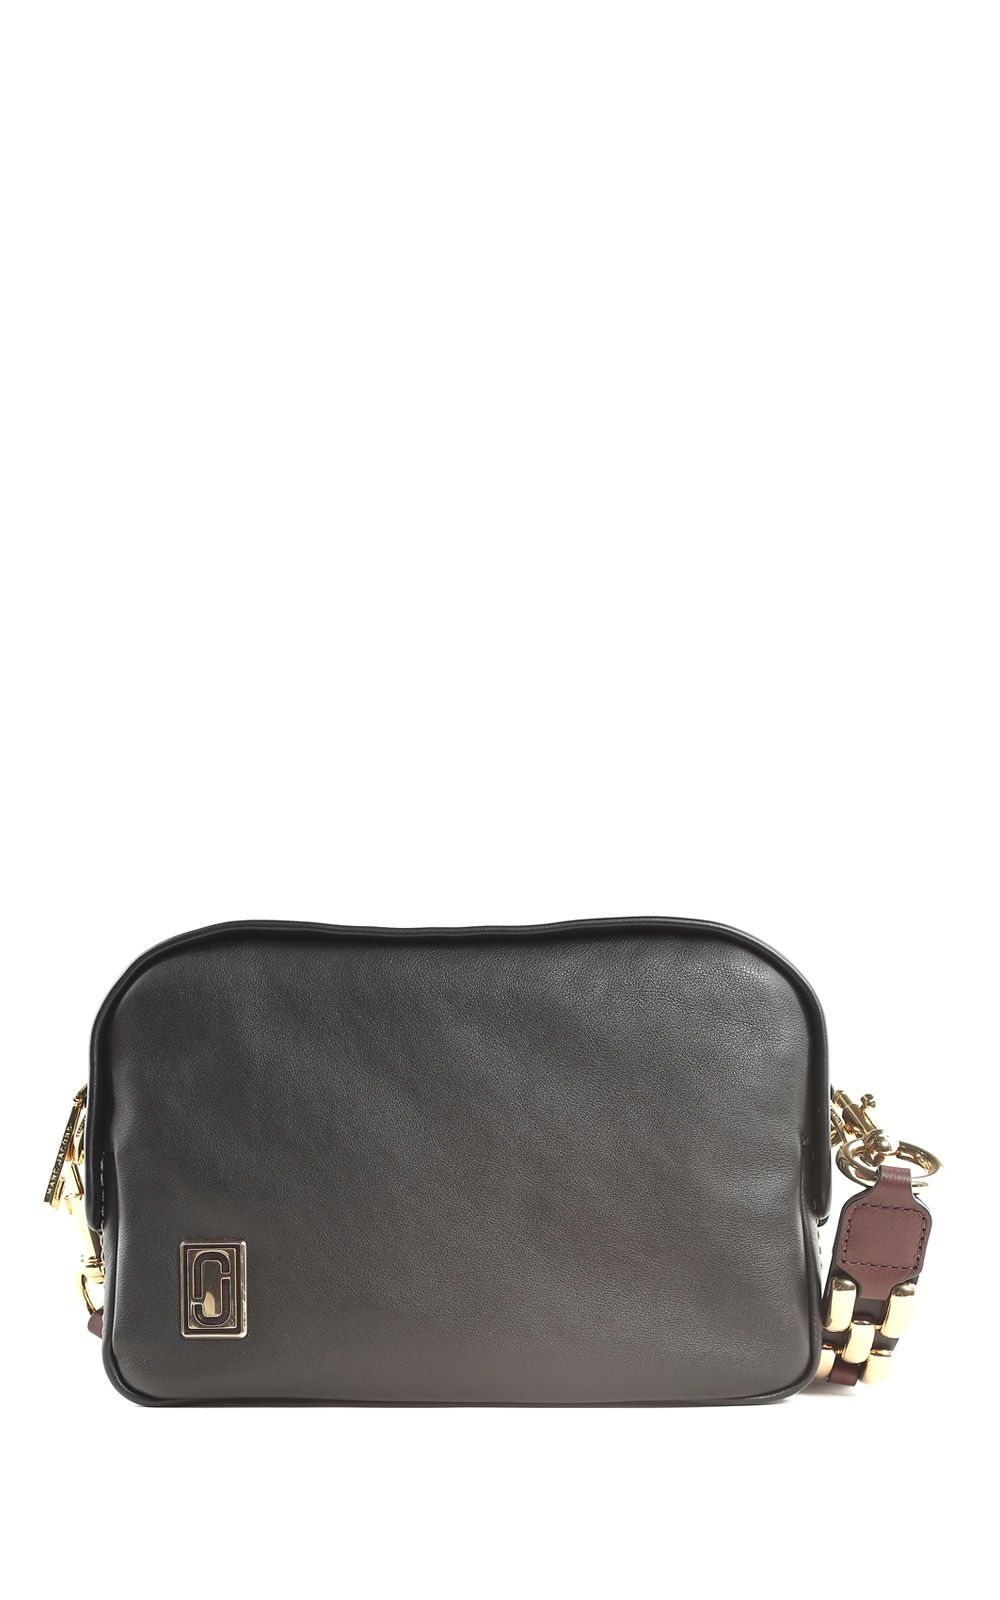 08e7bdfc00da MARC JACOBS THE SQUEEZE LEATHER CROSS-BODY BAG.  marcjacobs  bags  shoulder  bags  leather